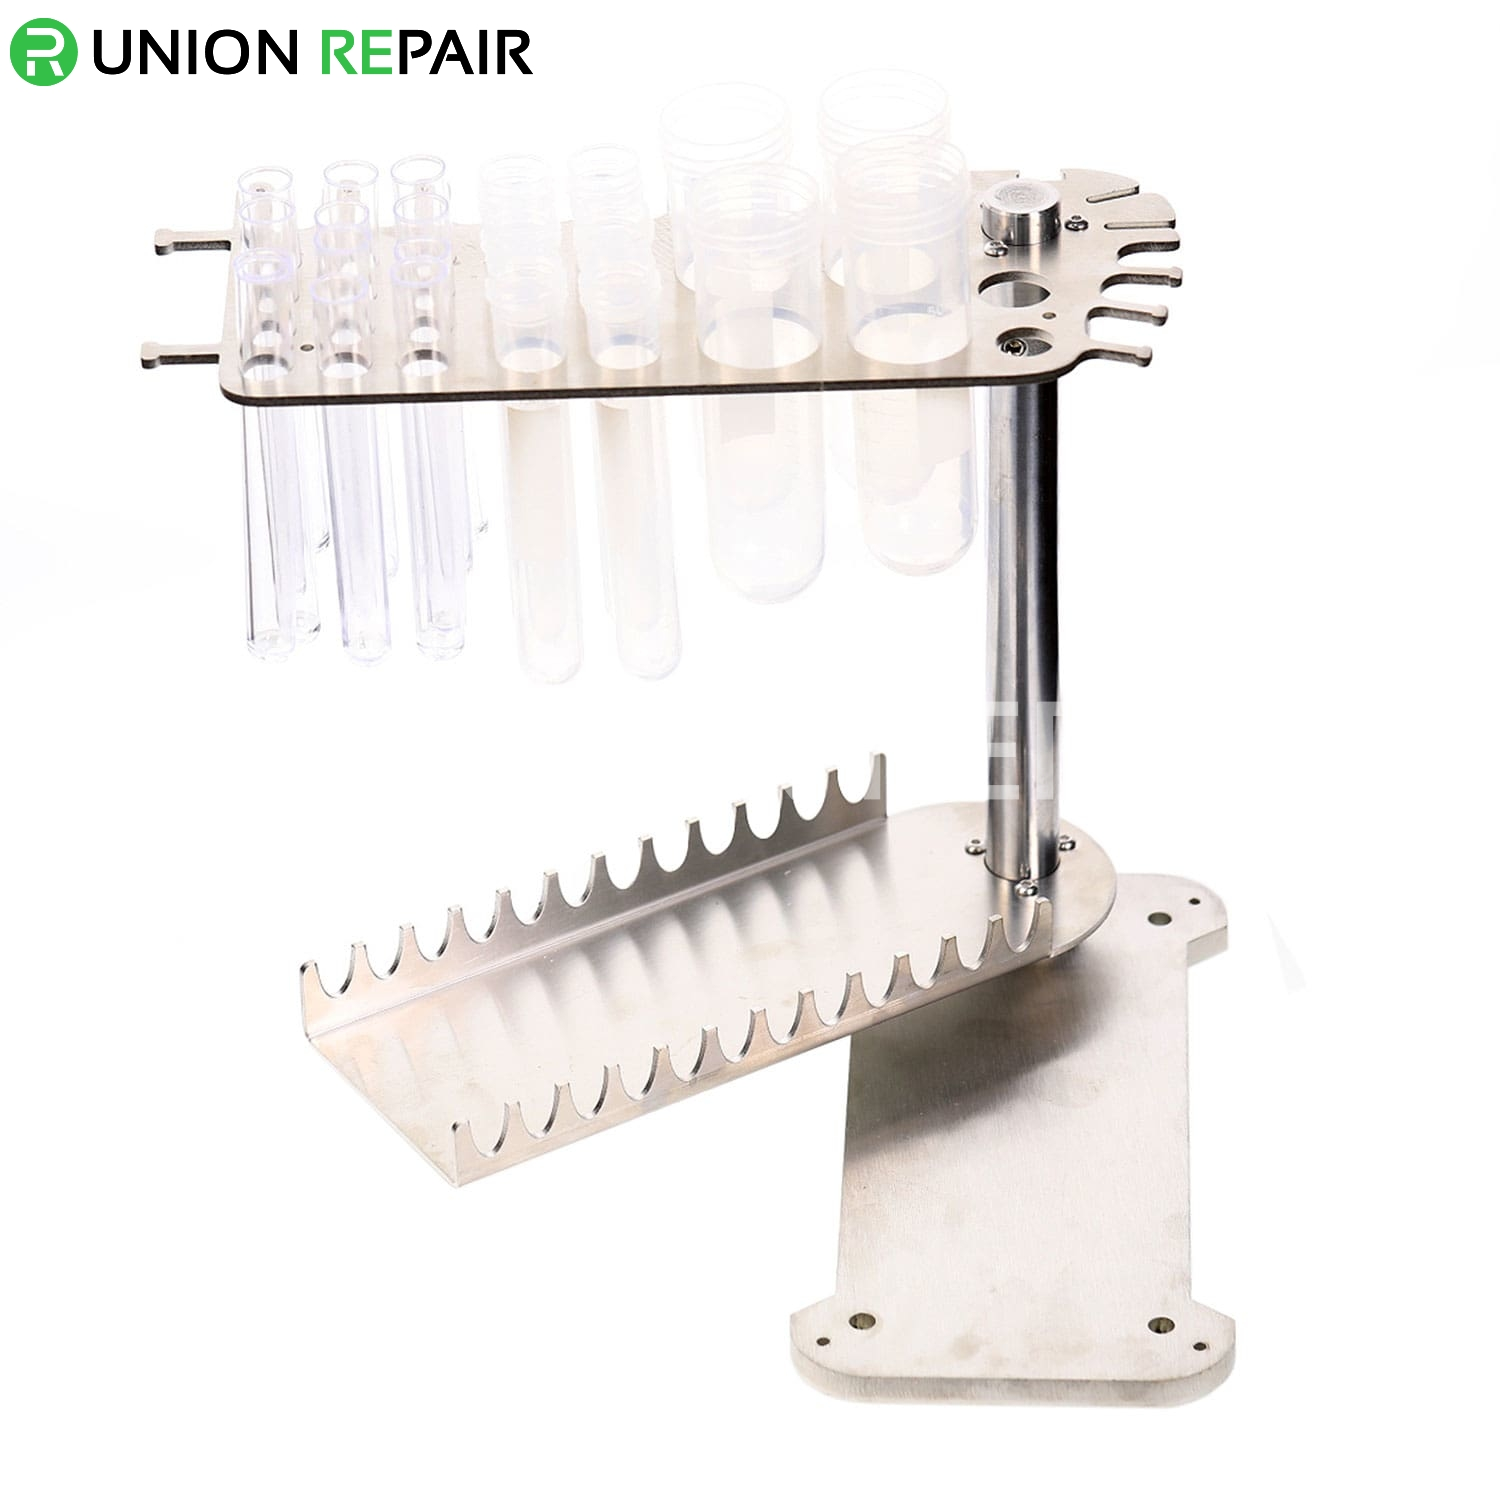 Aluminum Alloy Rotatable Screwdrivers Tool Weapon Rack, fig. 10